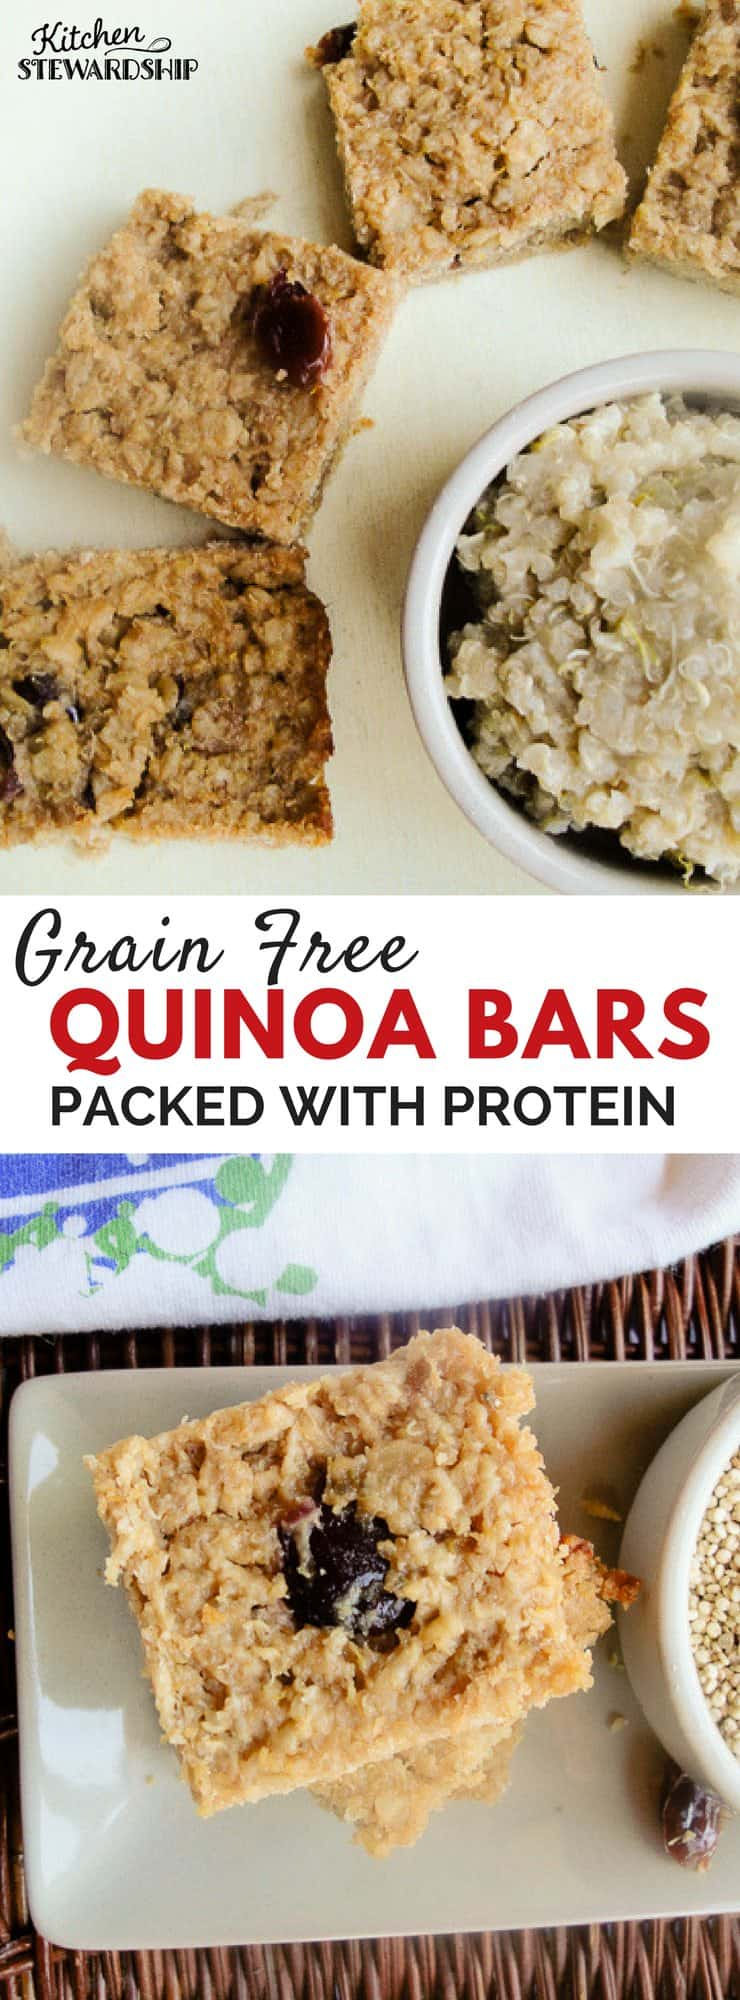 Packed with protien from nuts and quinoa these bars will become your go-to snack for on-the-go!